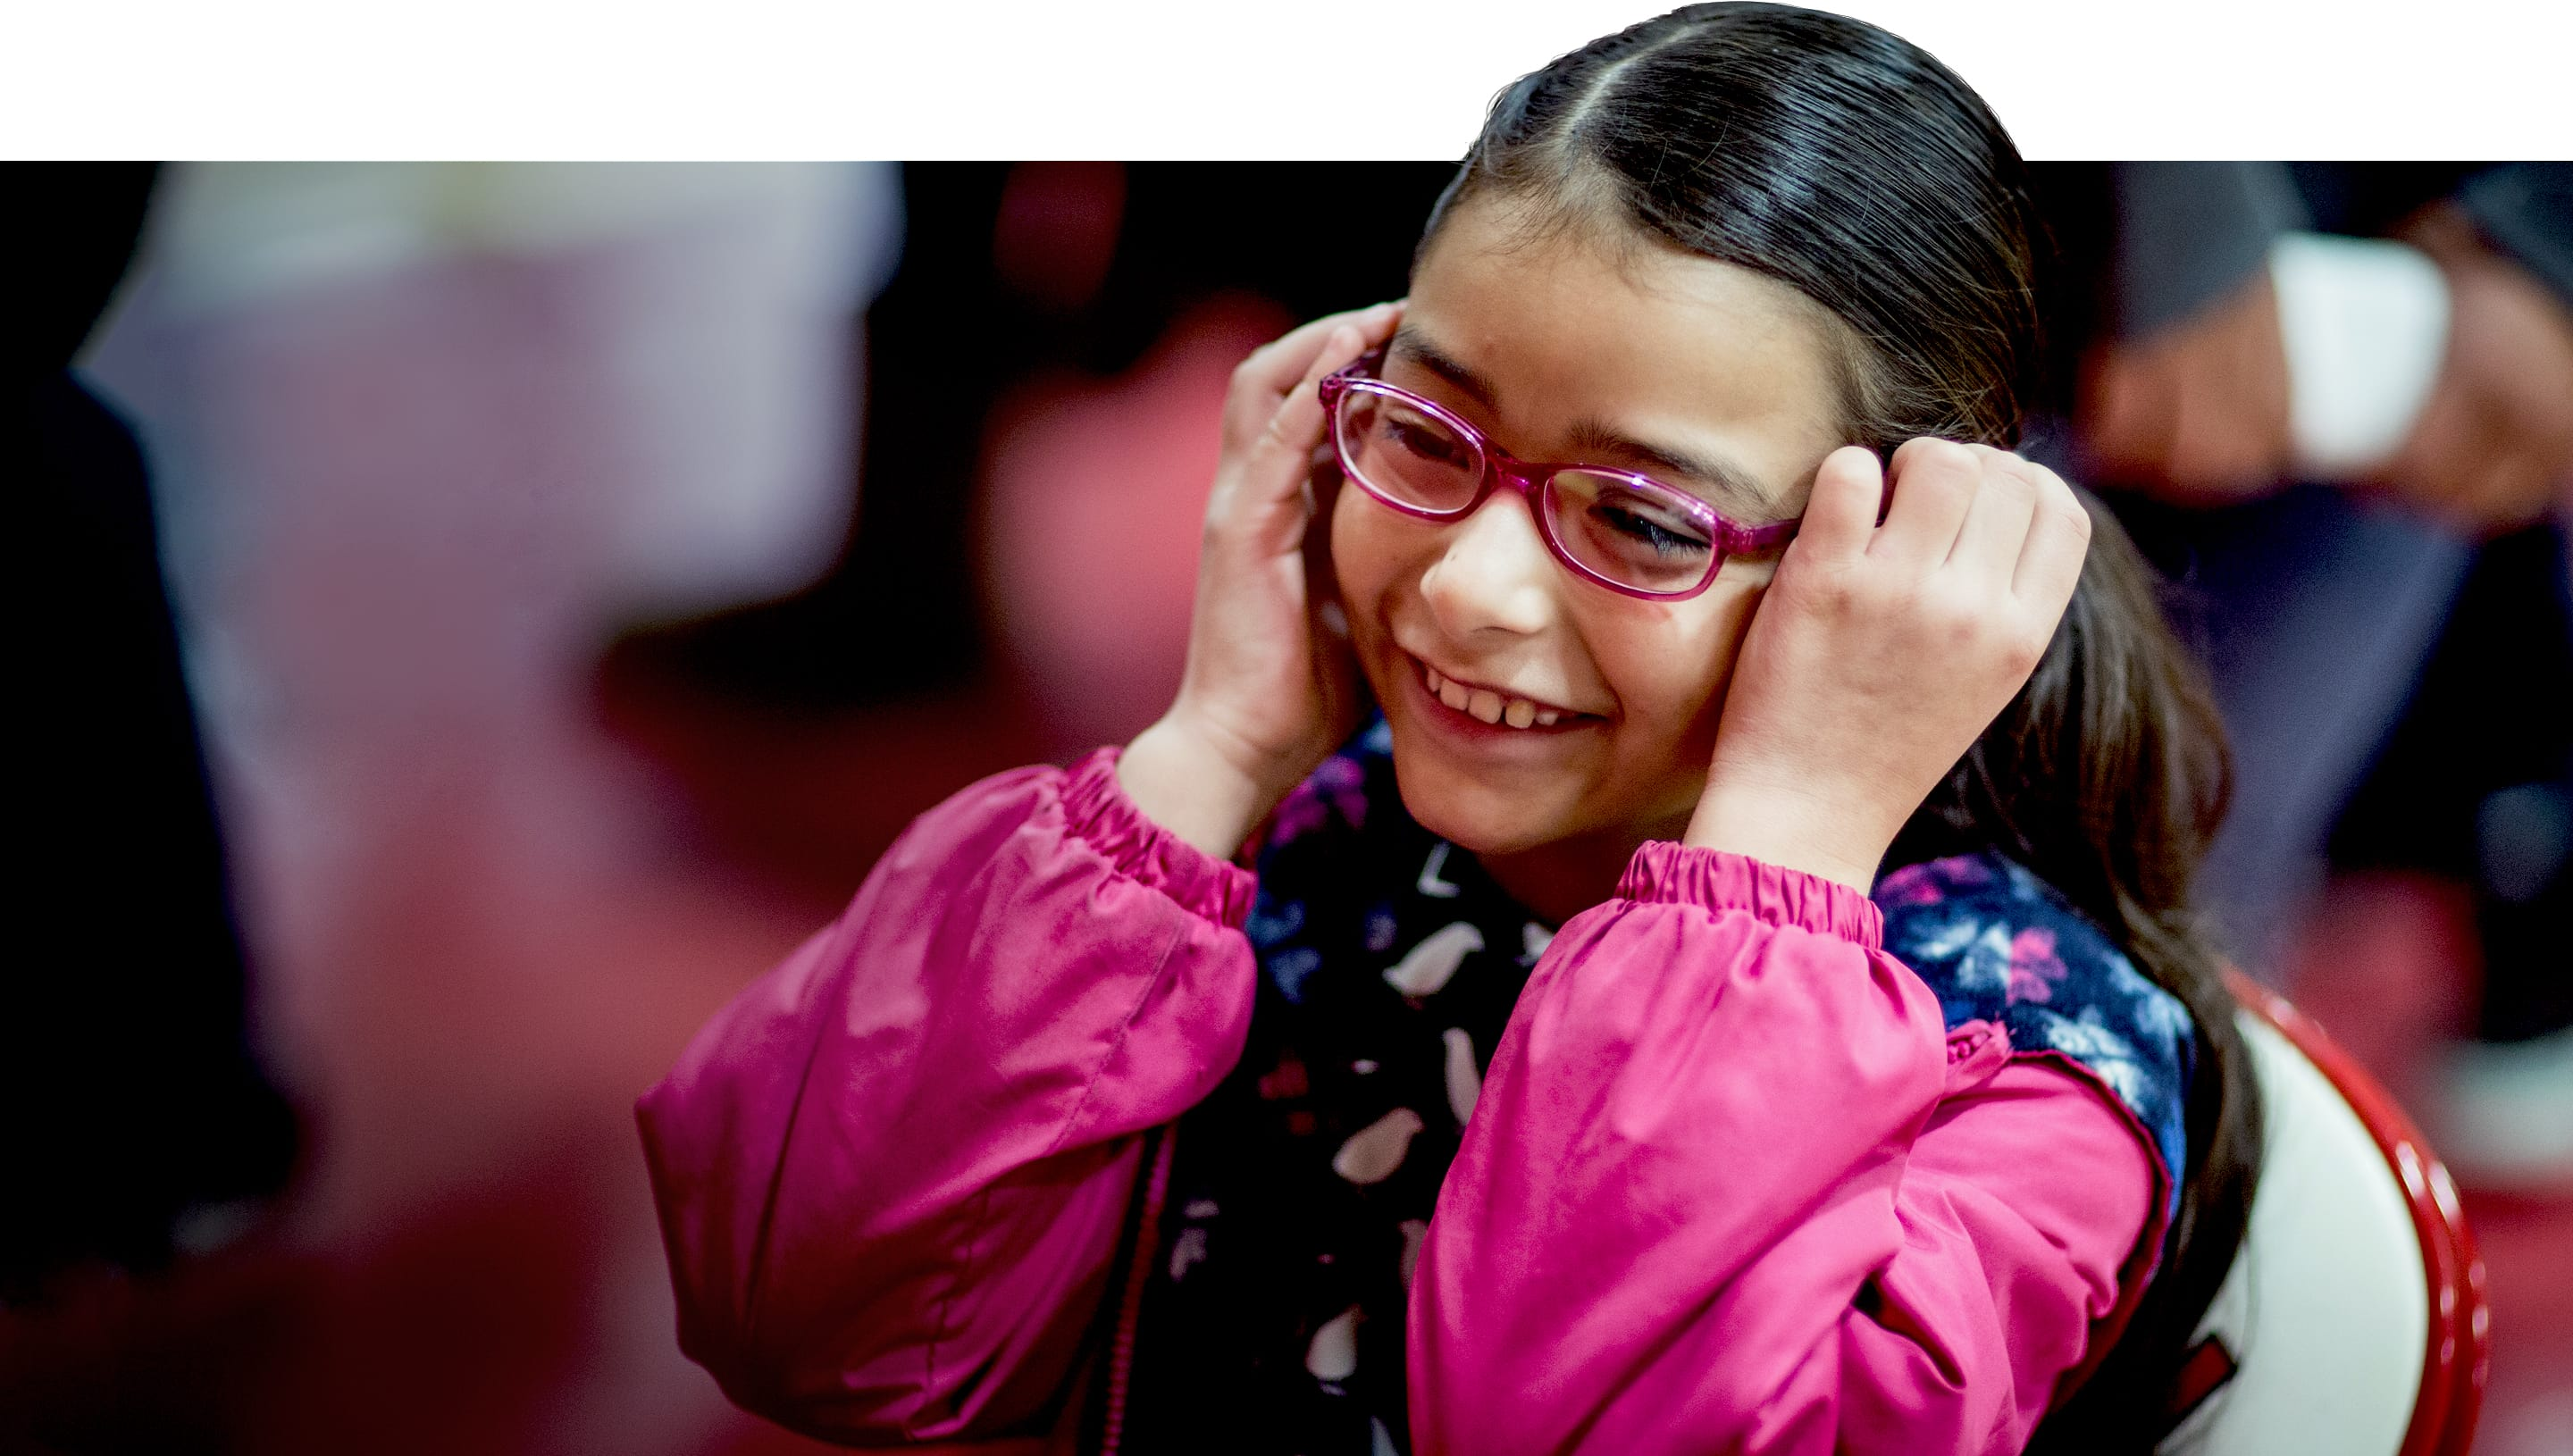 OneSight beneficiary tries on donated glasses for the first time